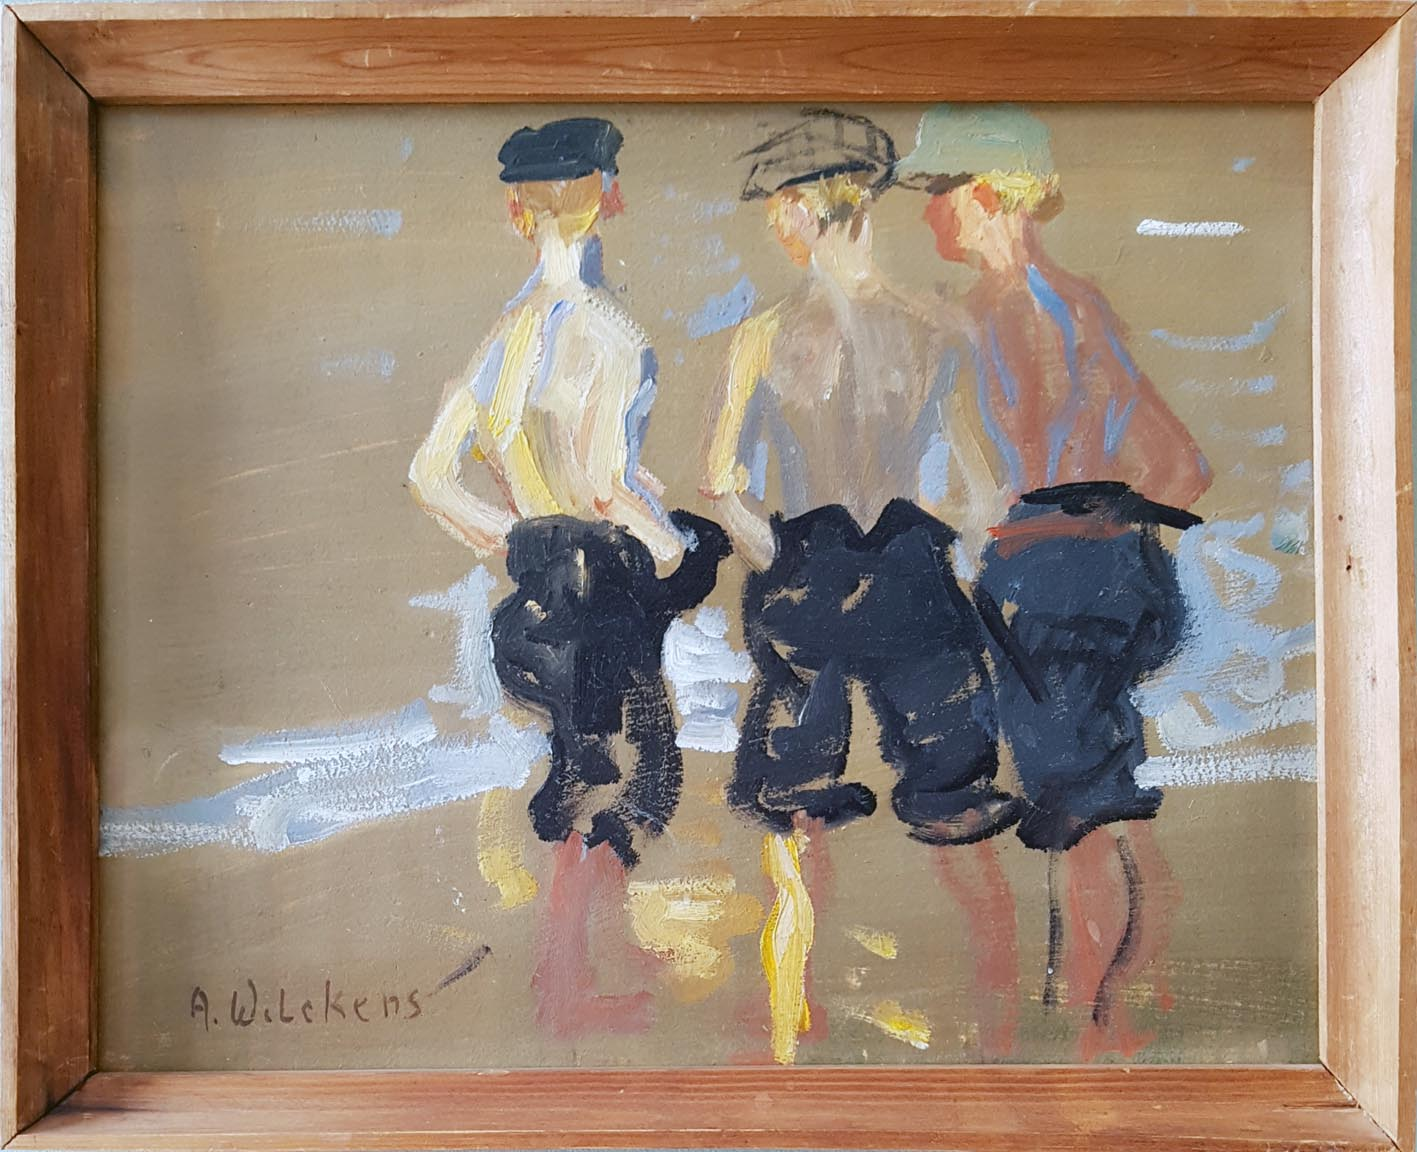 Another painter from Fanoe is August G C Wilckens, who painted these boys.